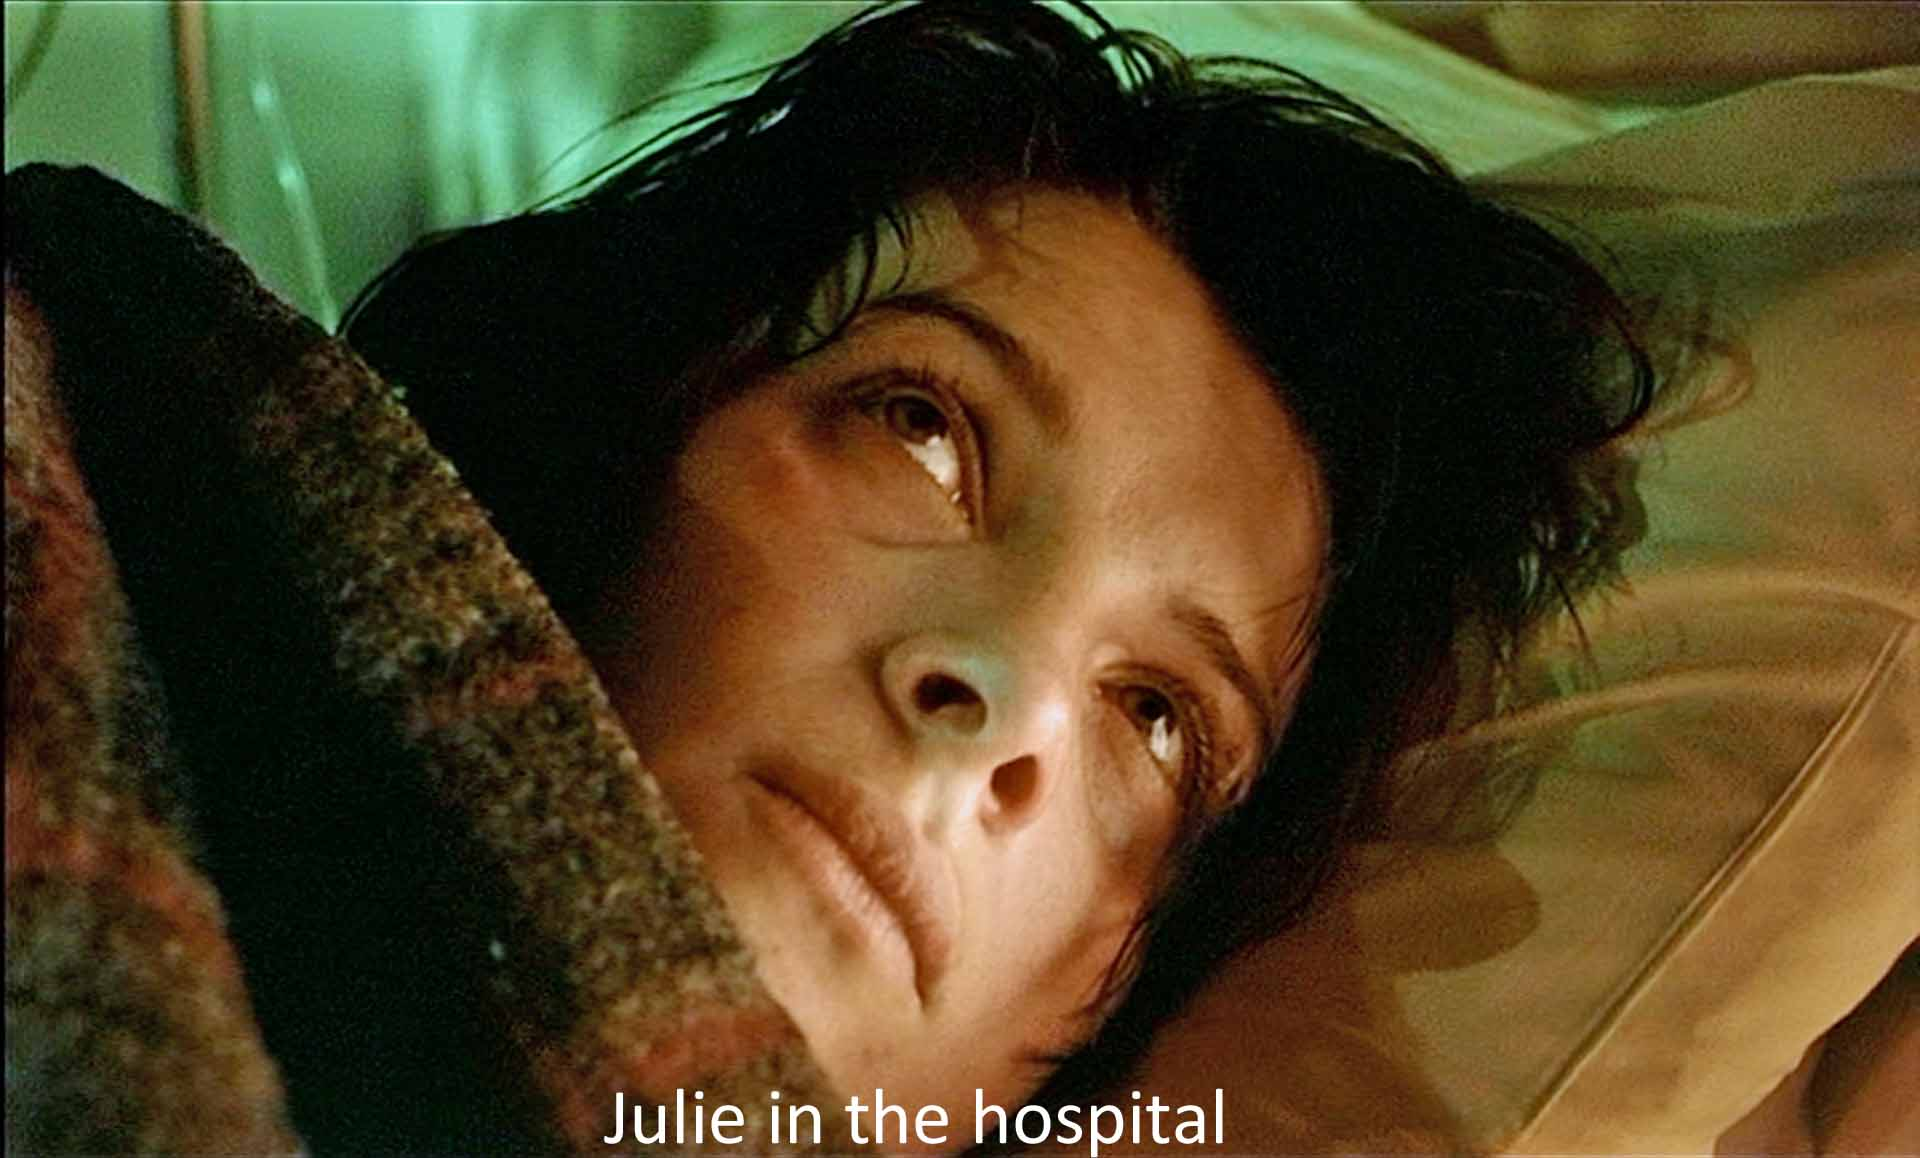 Julie in the hospital